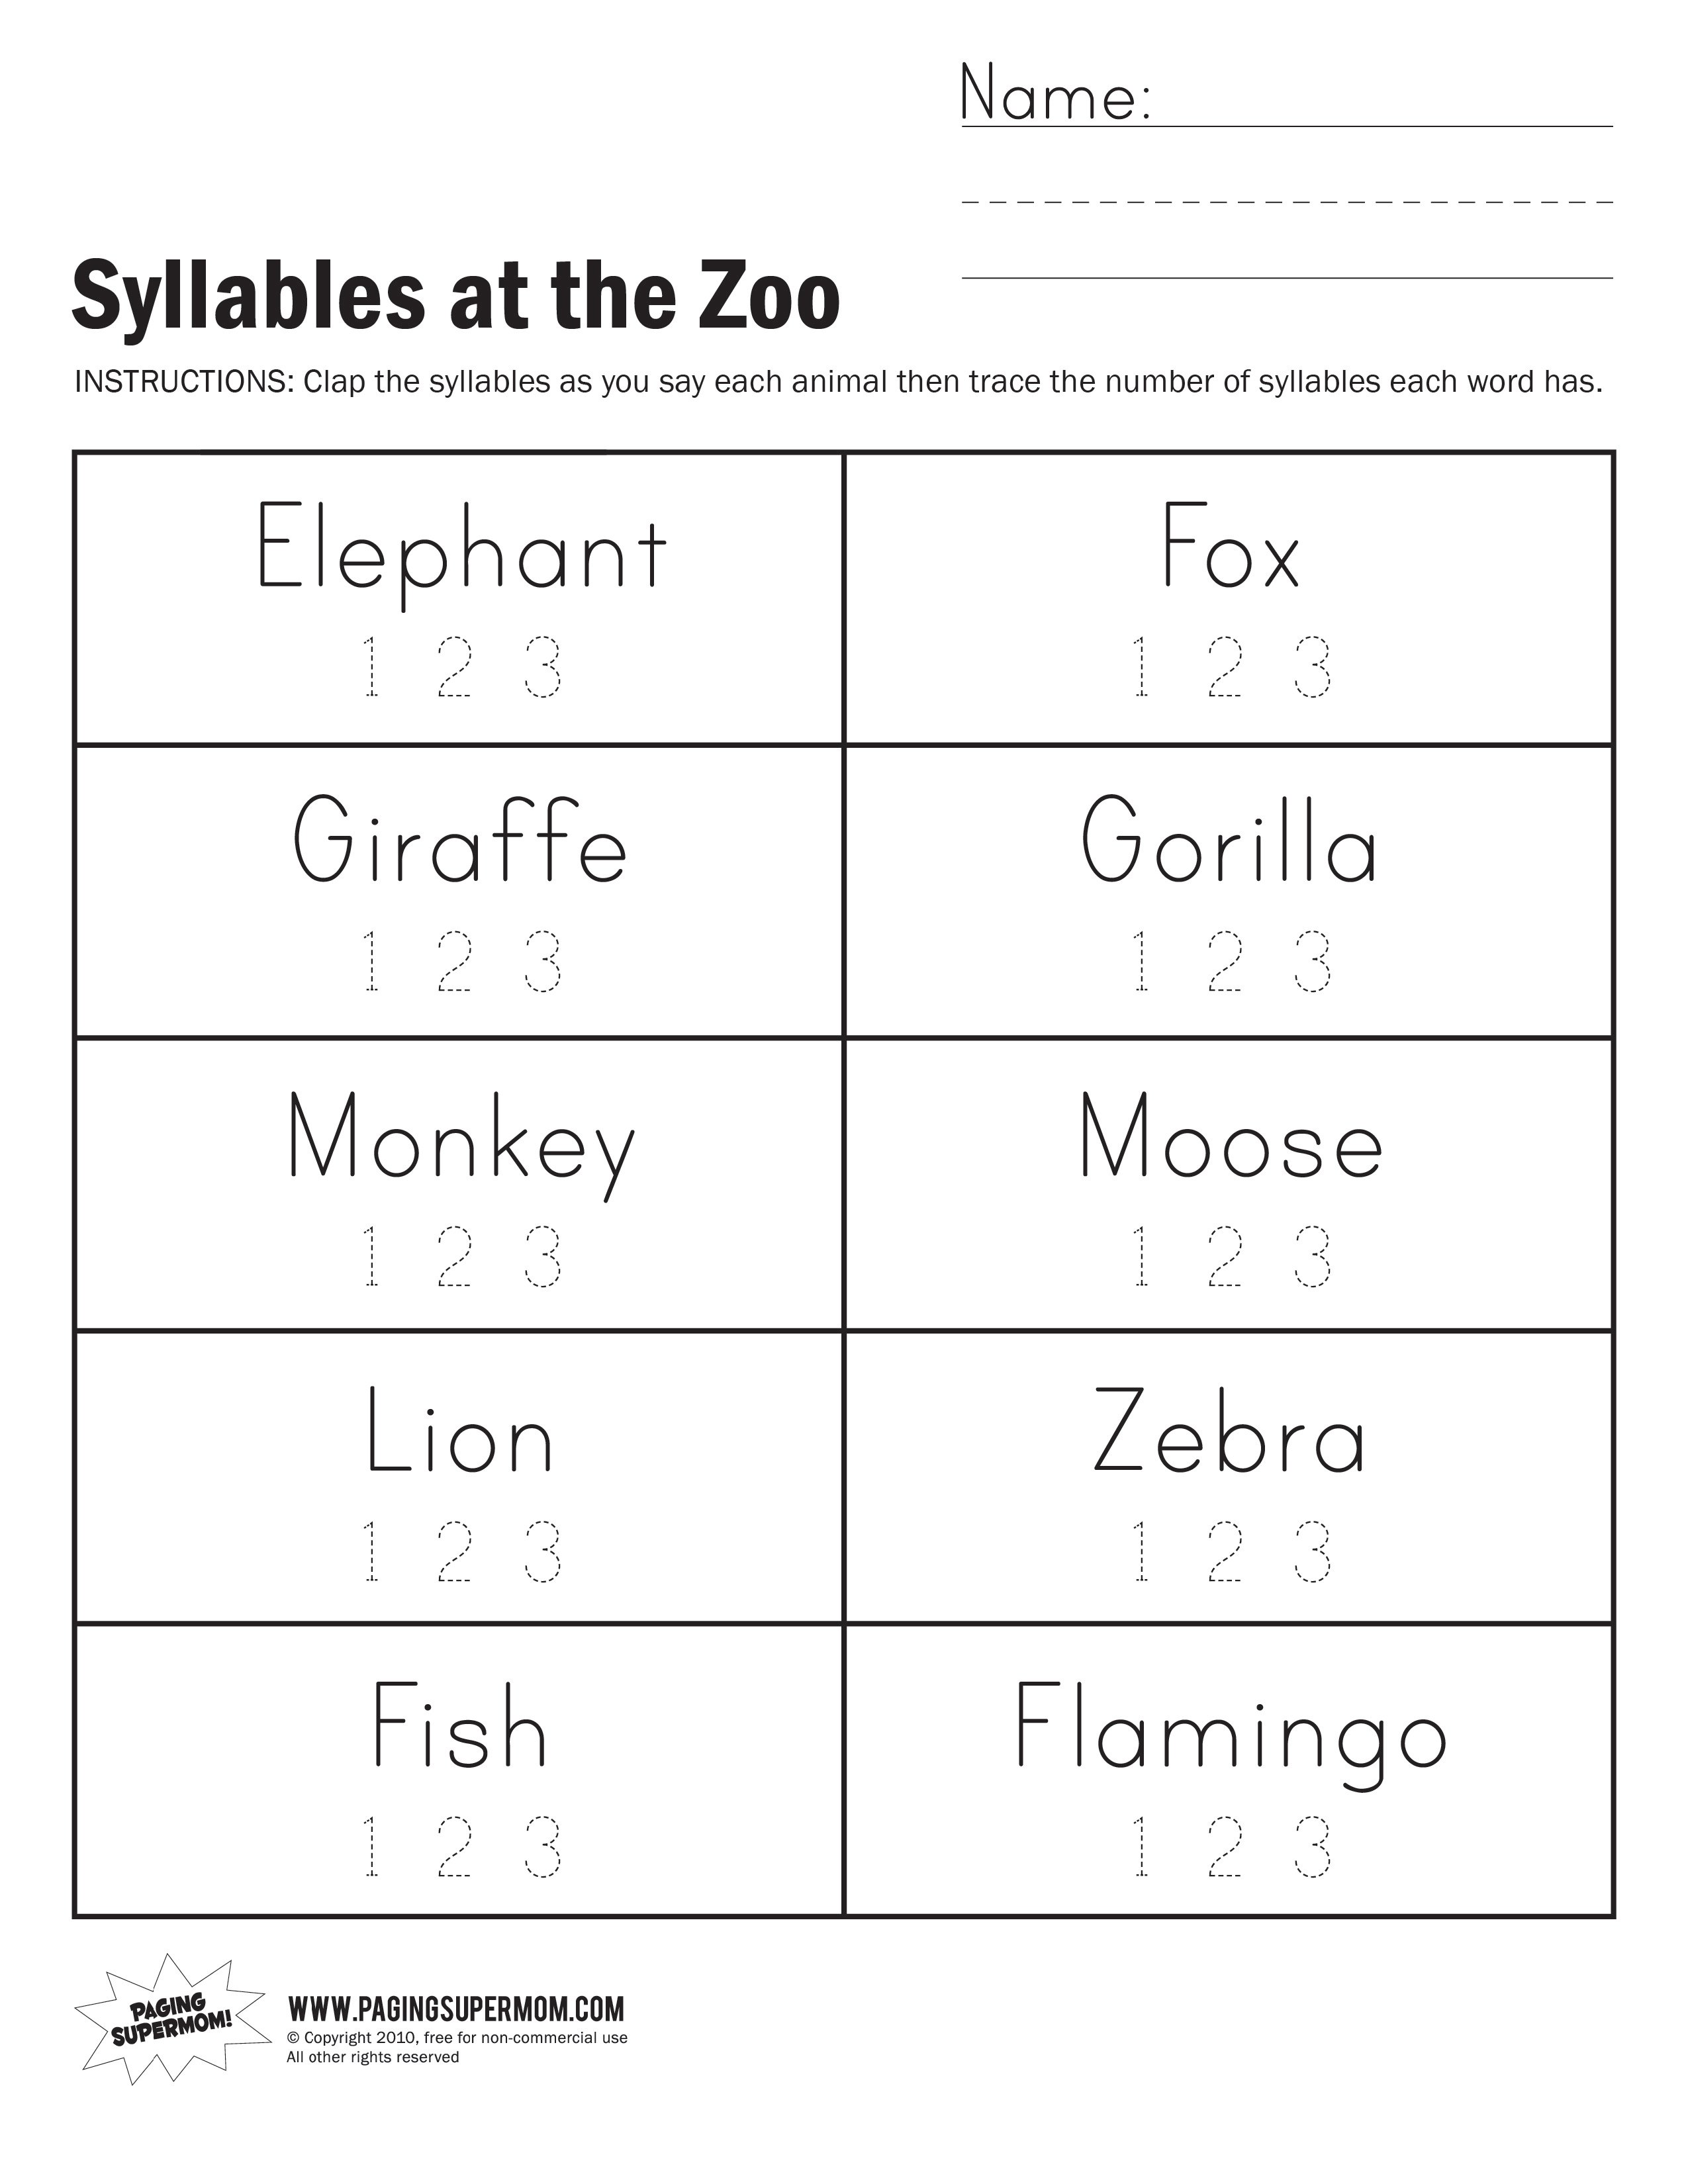 ... worksheet for preschool and kindergarten students ... Images - Frompo